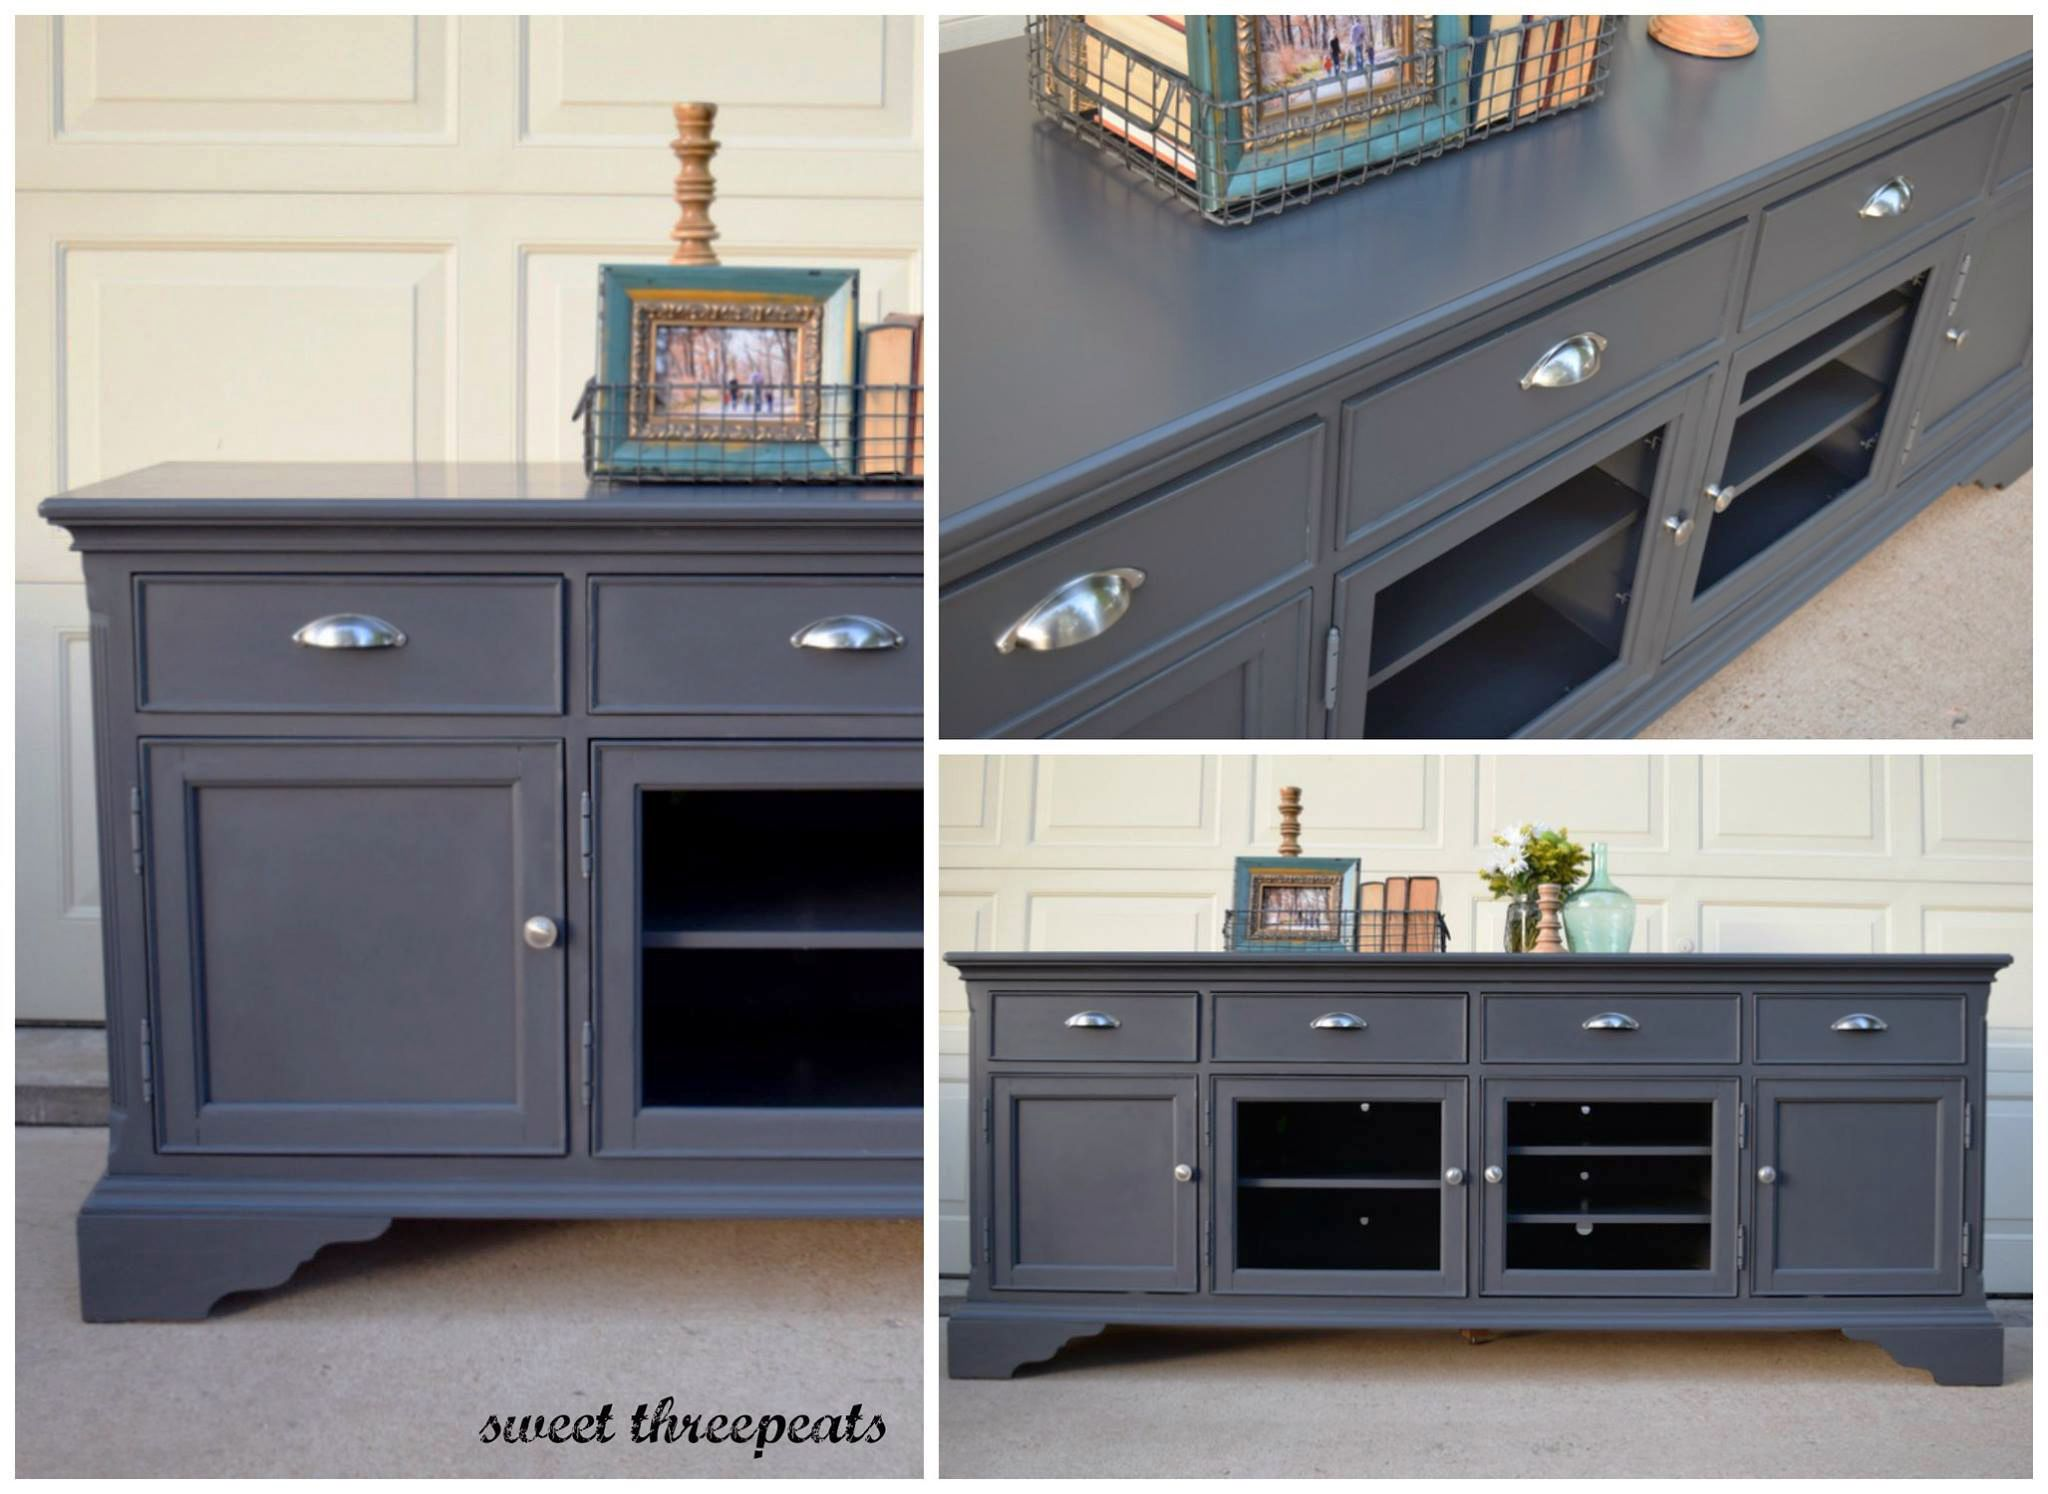 Lovely custom tv console in General Finishes Queenstown Gray. The new cup pulls look fantastic on this piece!!